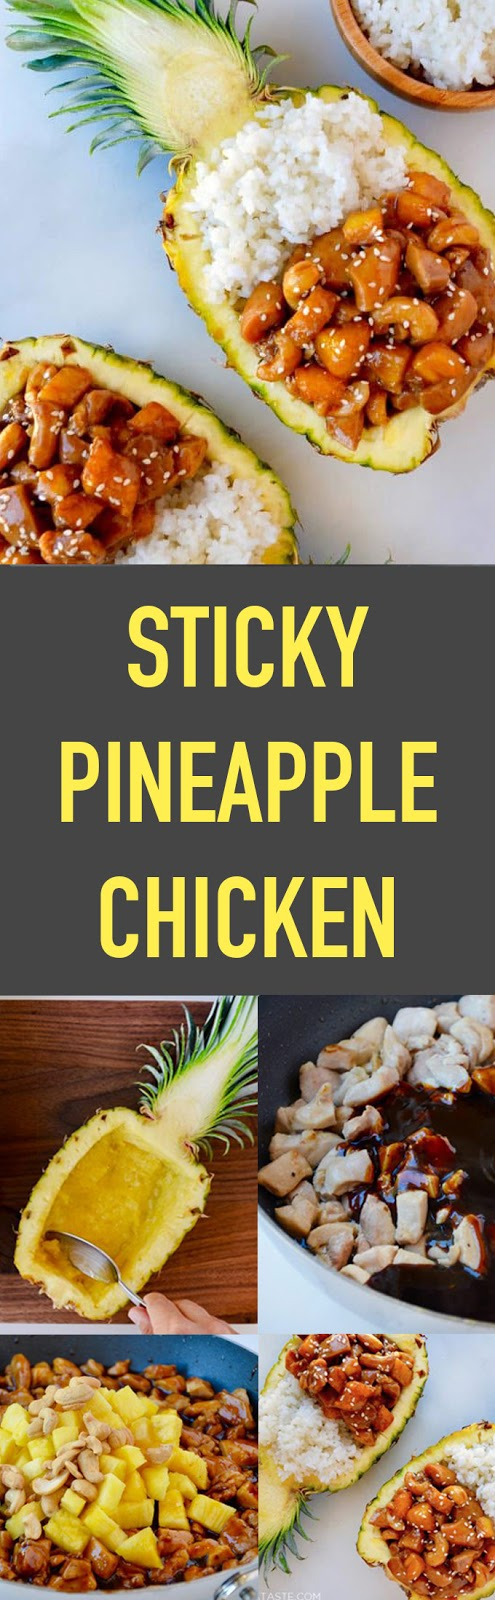 Delicious Sticky Pineapple Chicken